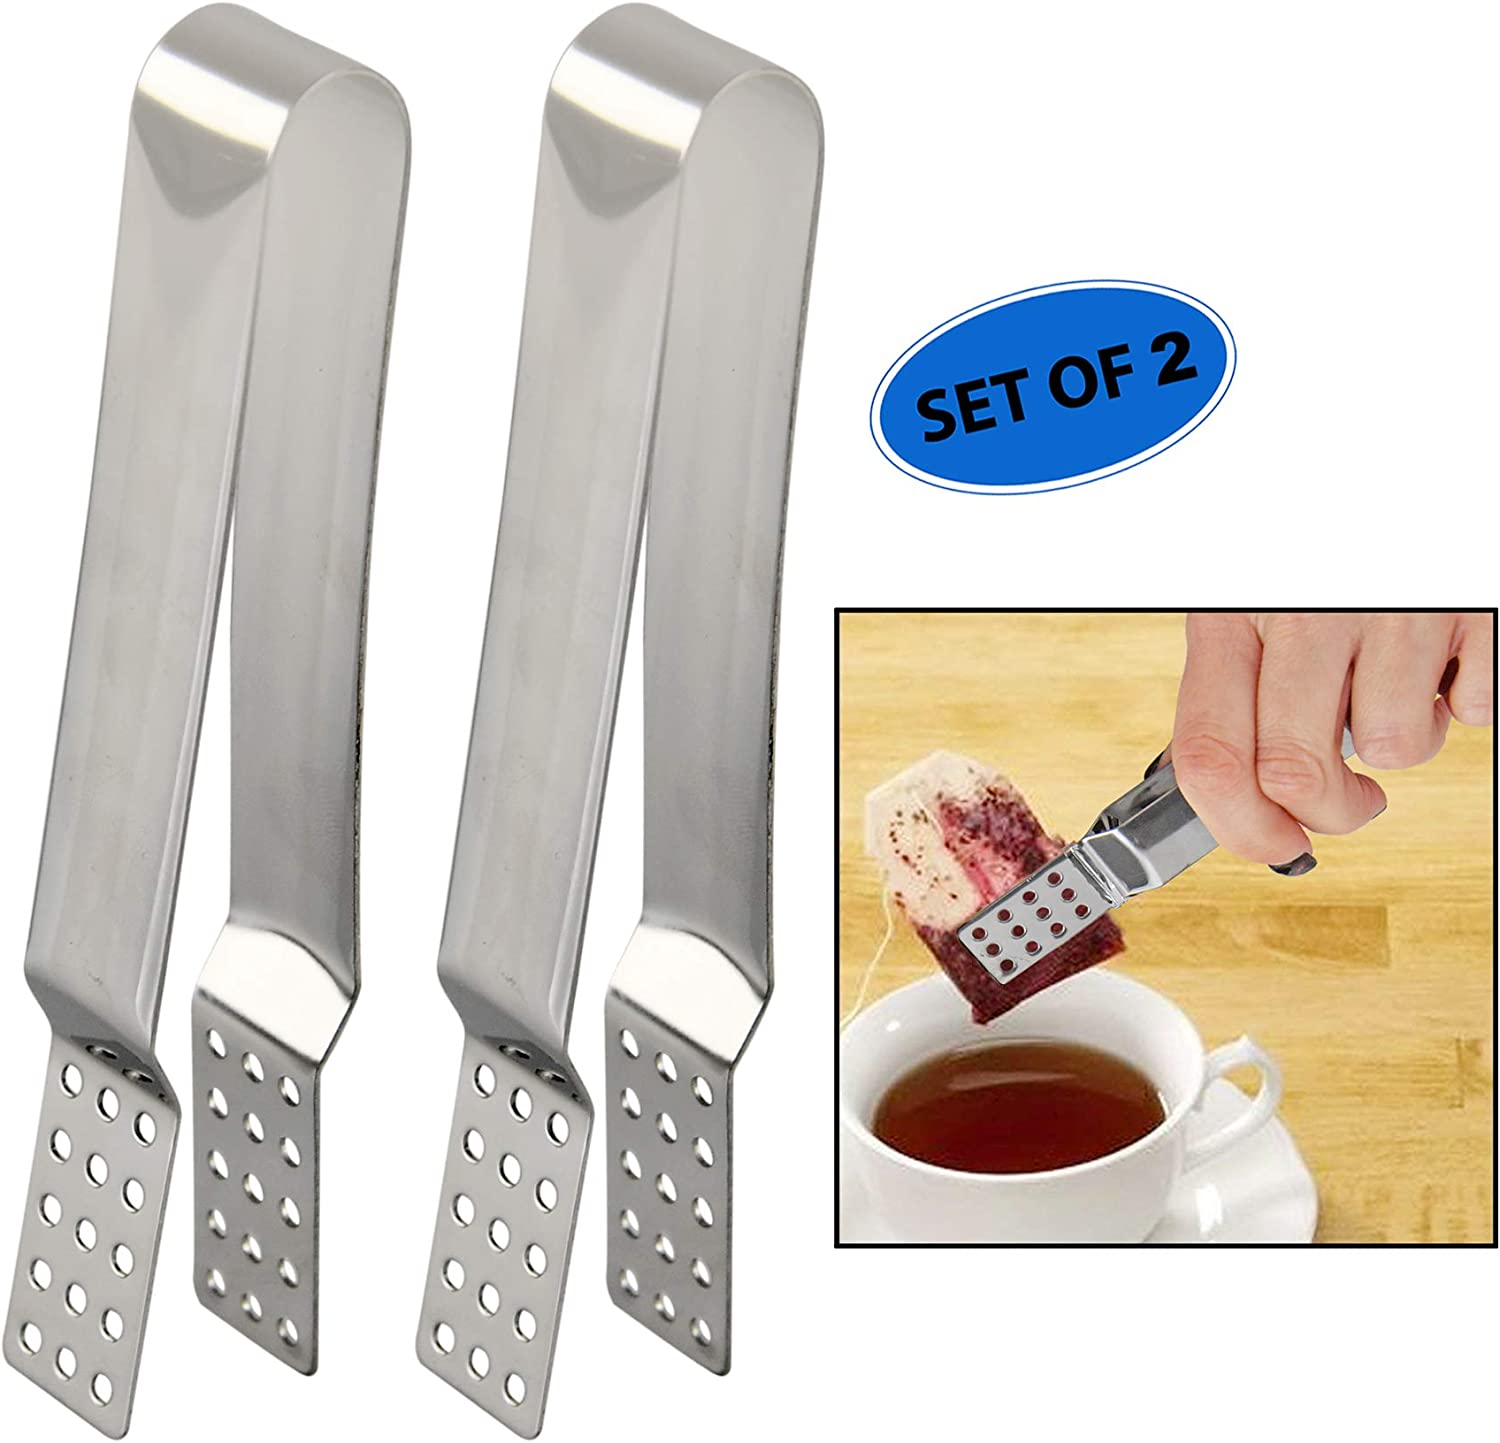 Haishell 2 PCS Tea Bag Squeezer Round Stainless Steel Teabag Tong Holder Herb Grip,6 Inch Long